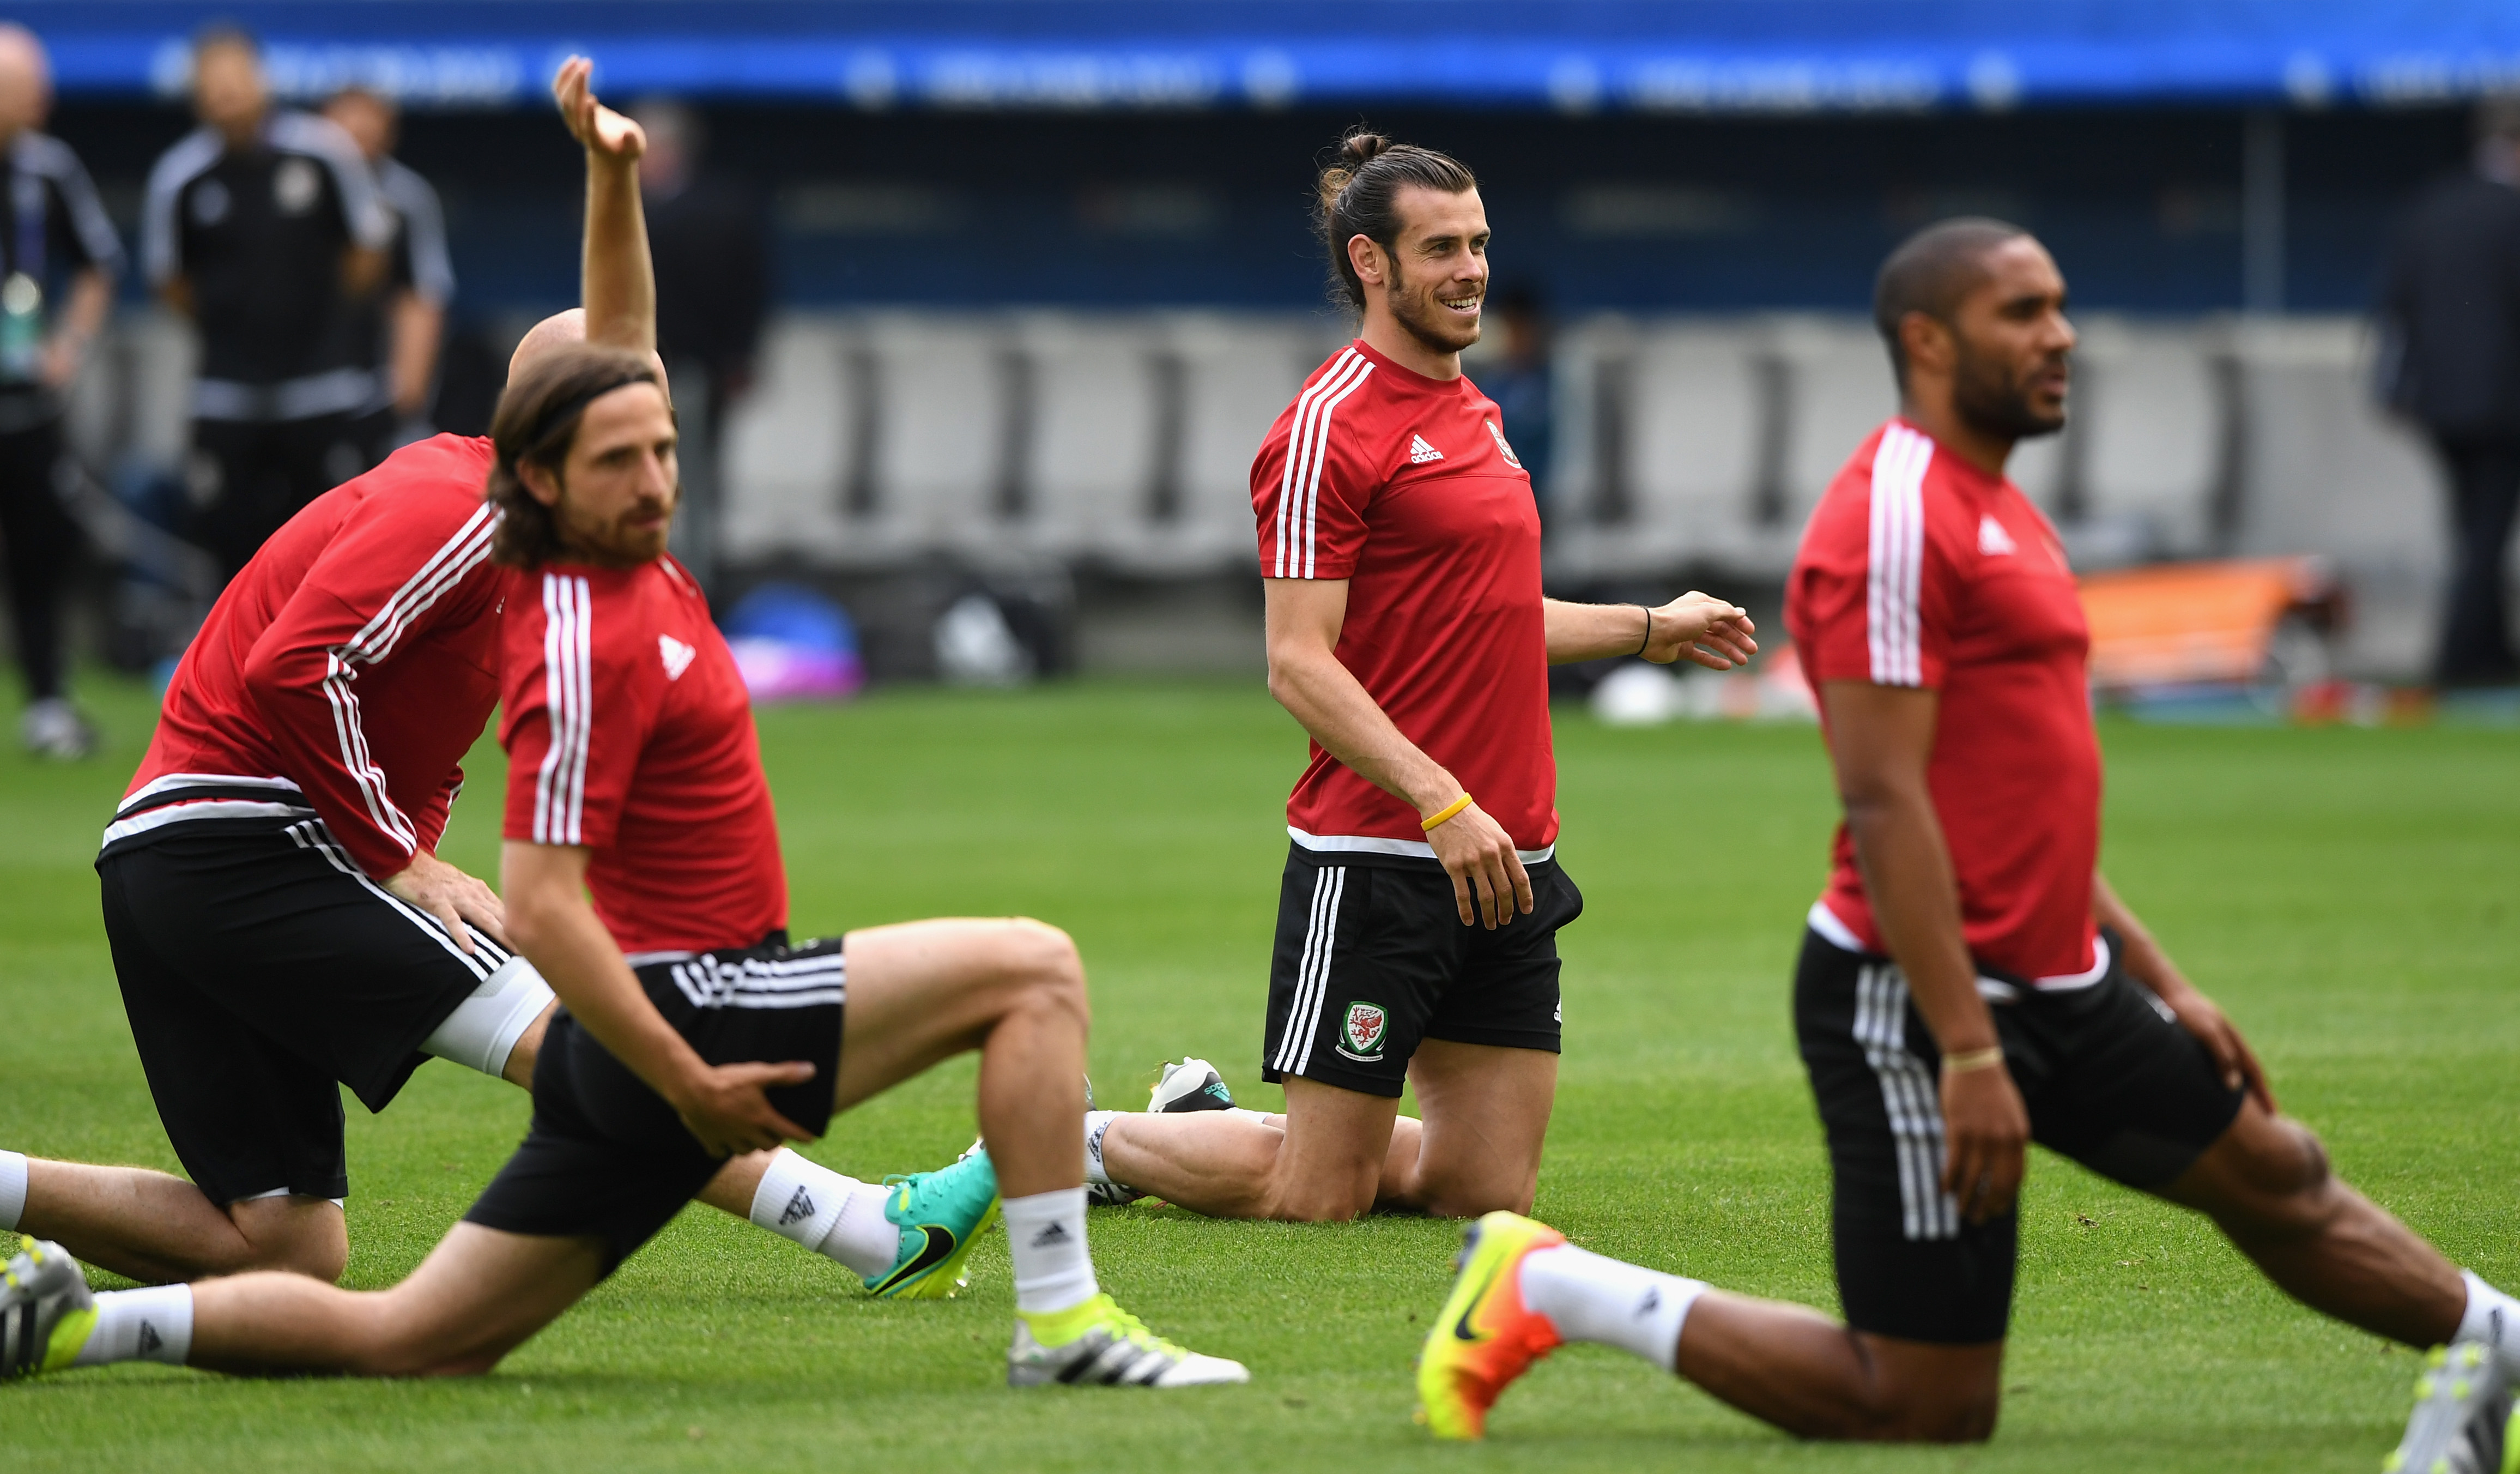 BORDEAUX, FRANCE - JUNE 10:  Wales player Gareth Bale (c) raises a smile as Joe Allen (l) and Ashley Williams stretch during Wales training at Nouveau Stade de Bordeaux ahead of their opening Euro 2016 match against Slovakia  on June 10, 2016 in Bordeaux, France.  (Photo by Stu Forster/Getty Images)